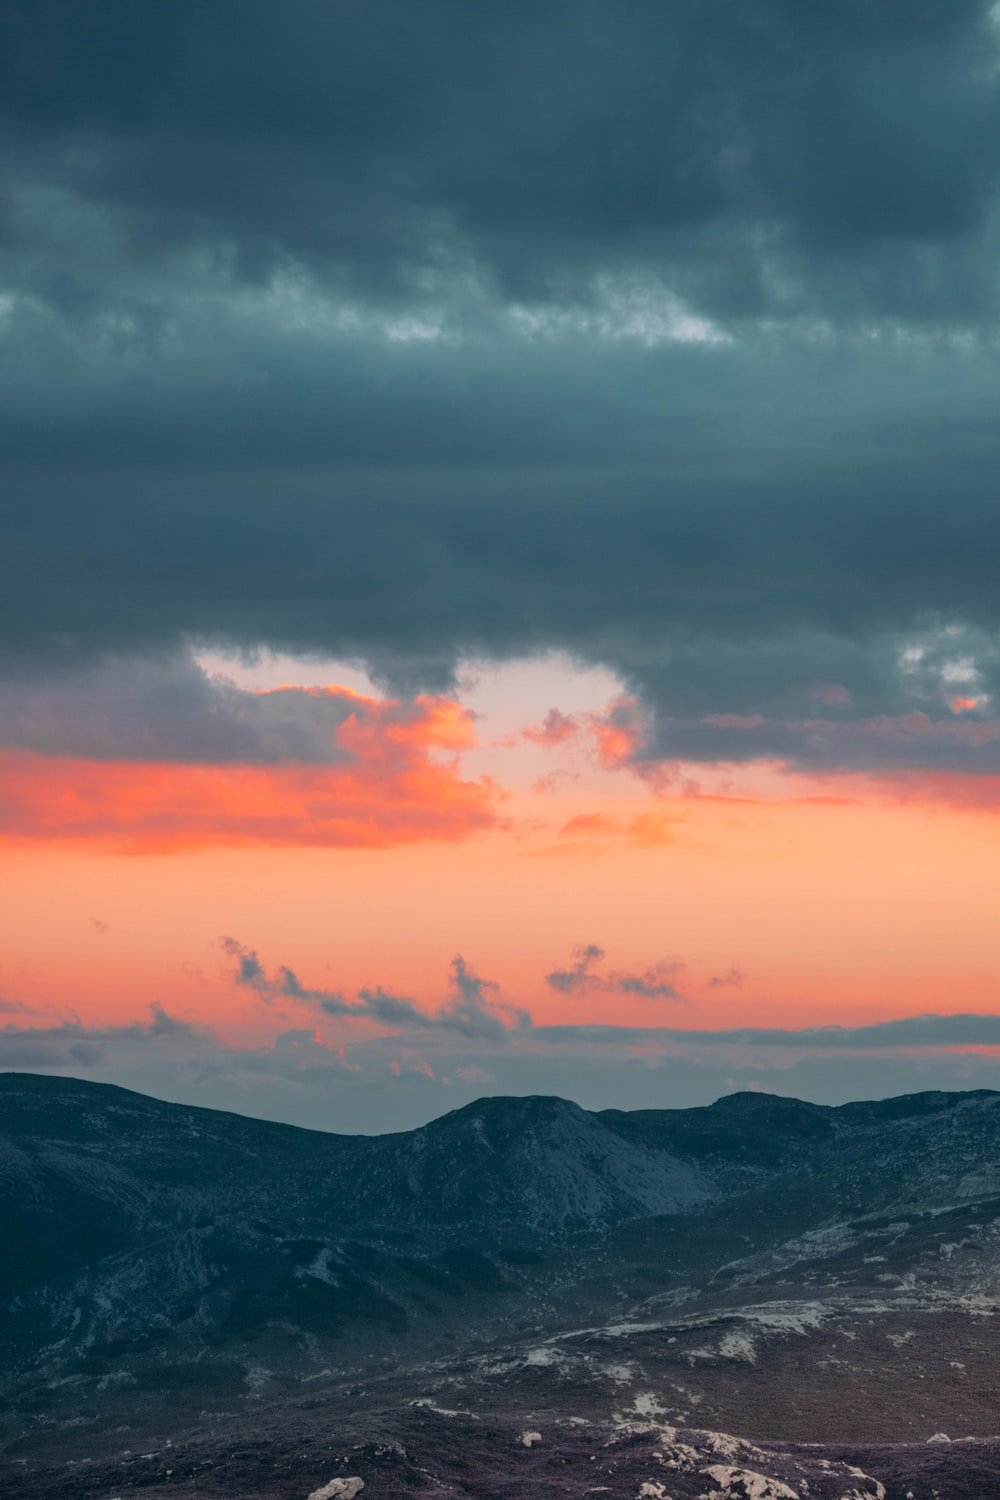 black mountains under orange and gray clouds